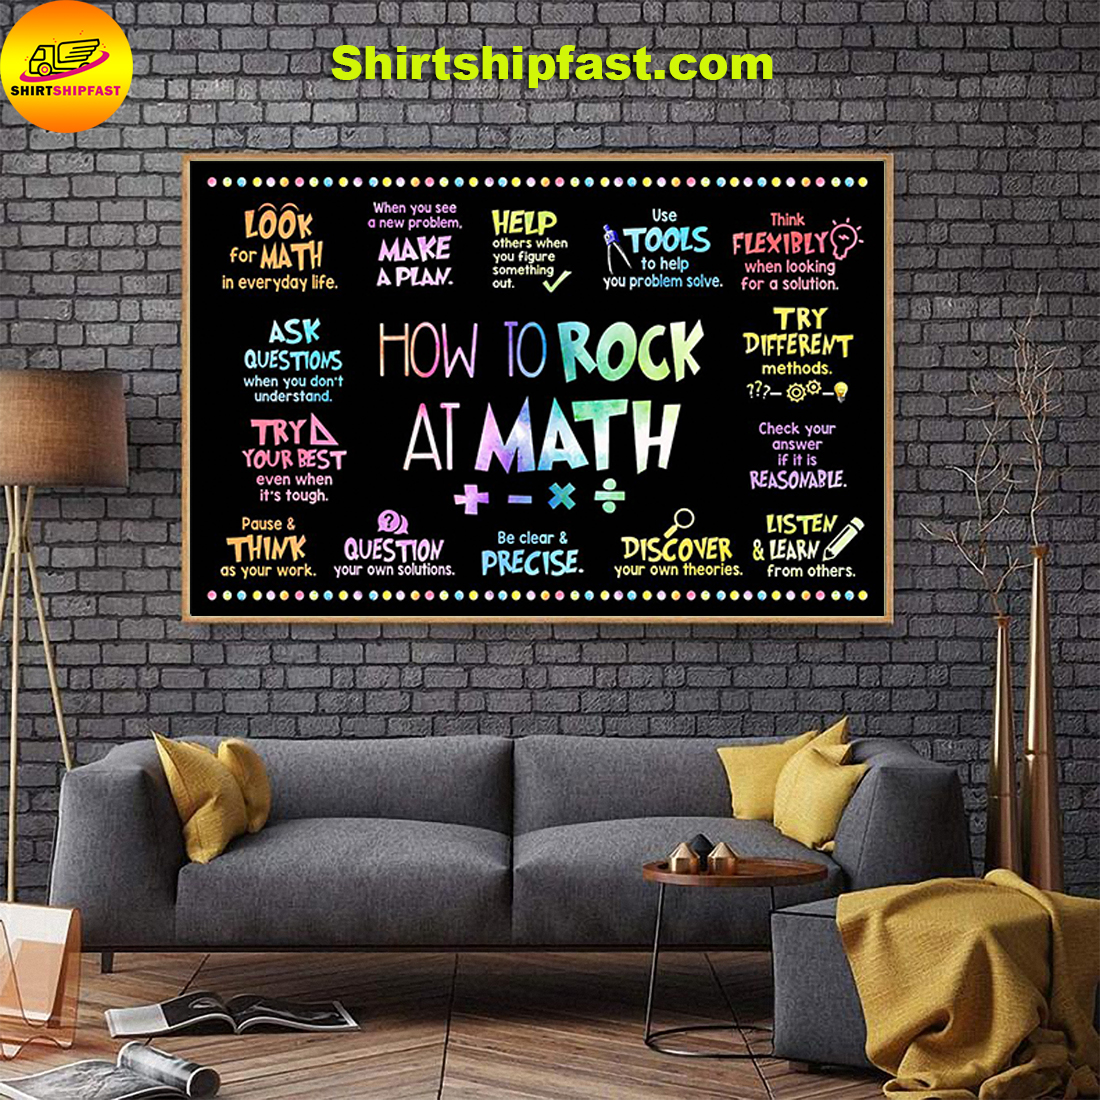 How to rock at math poster